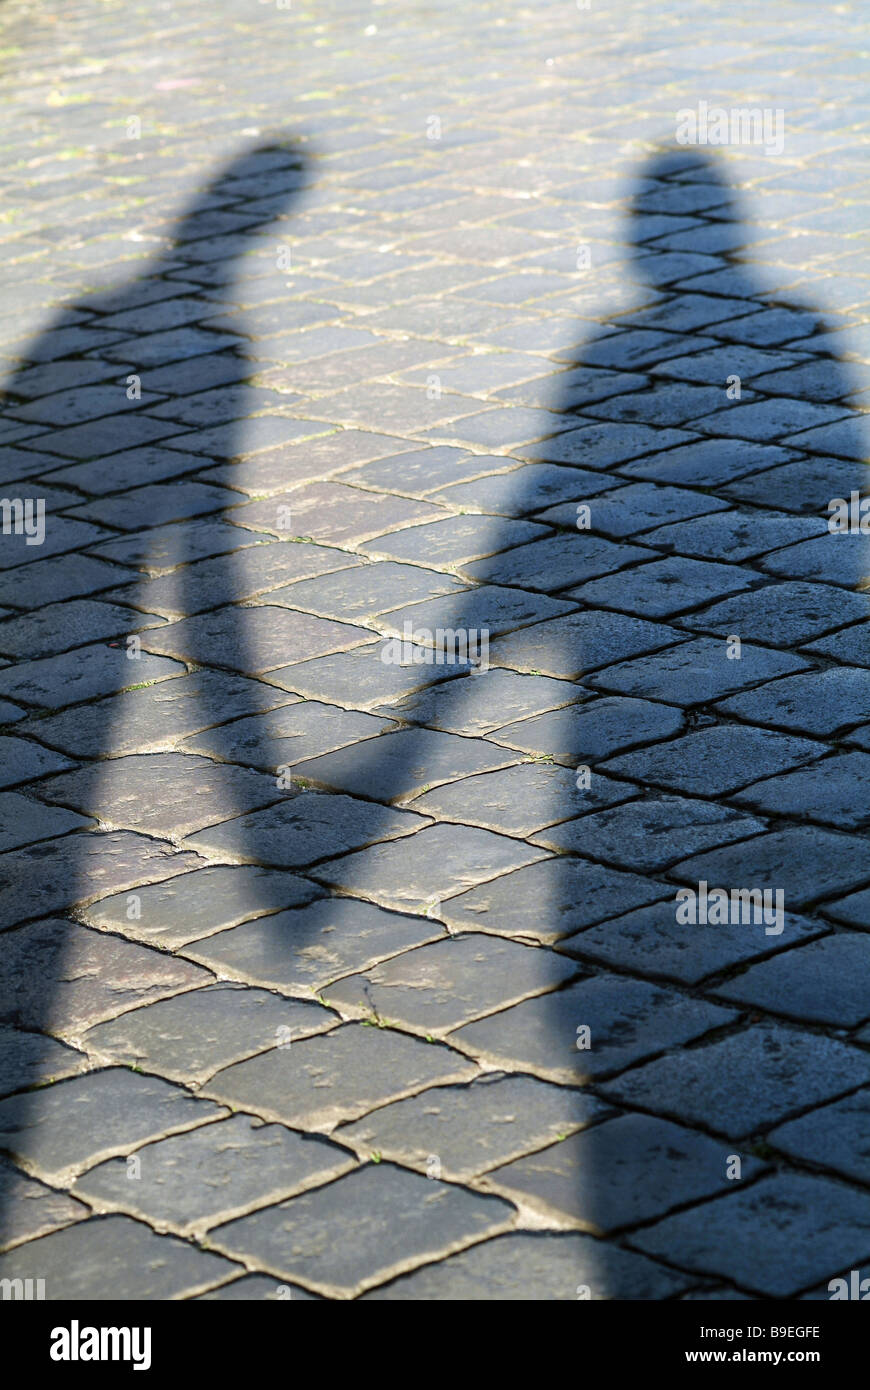 Shadows of two people holding hands Stock Photo  23062578 - Alamy fd91e968ad